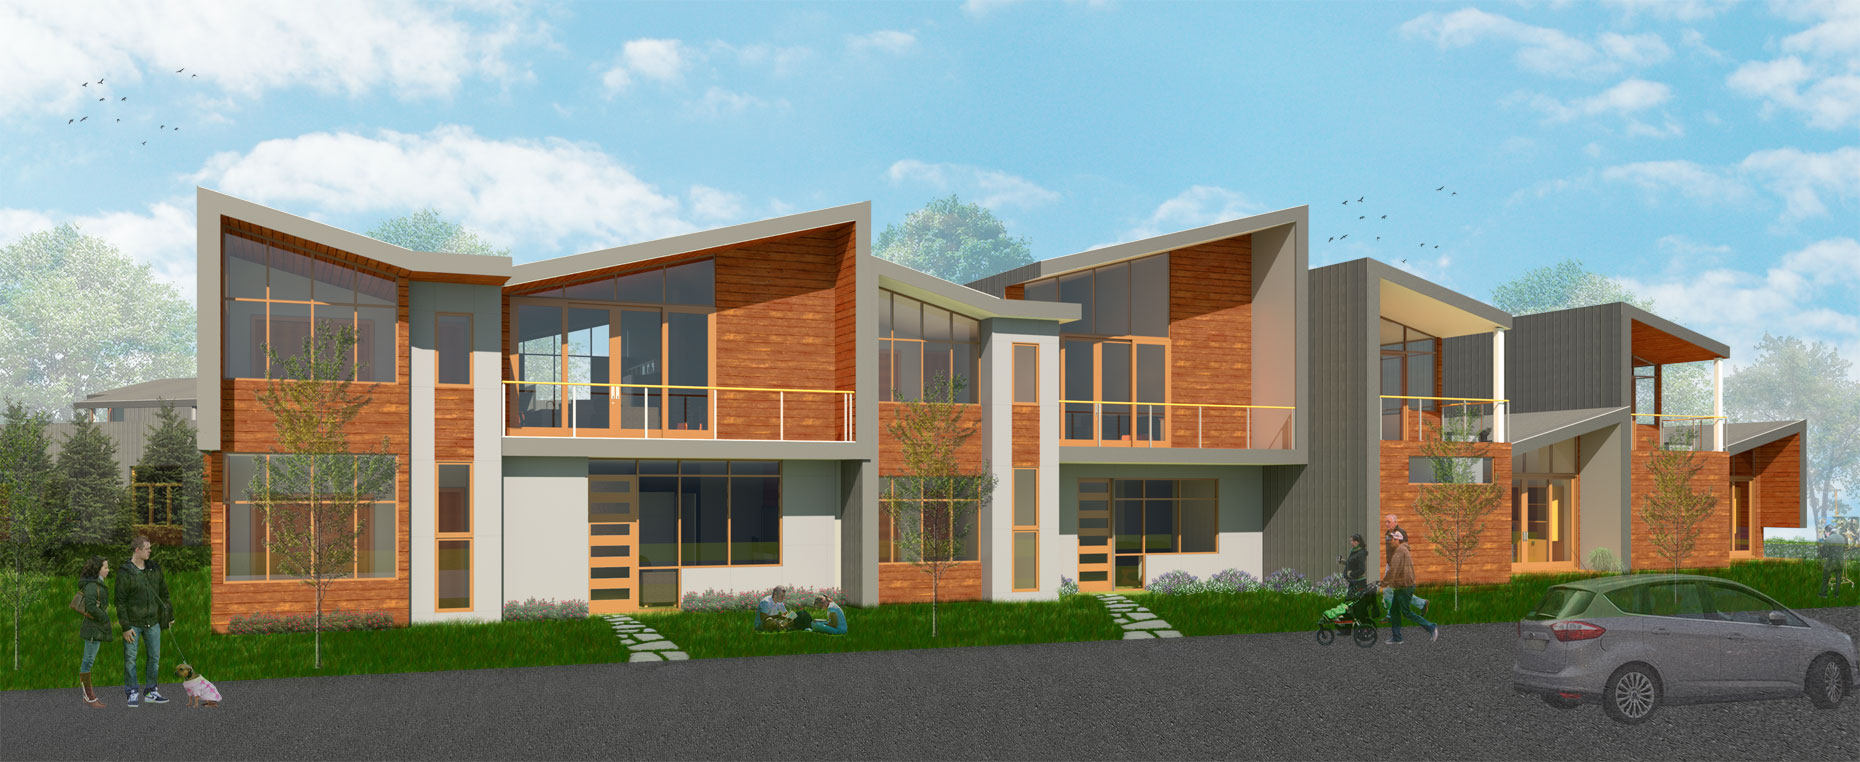 FOR-WEB-EXTERIOR-RENDERING-2